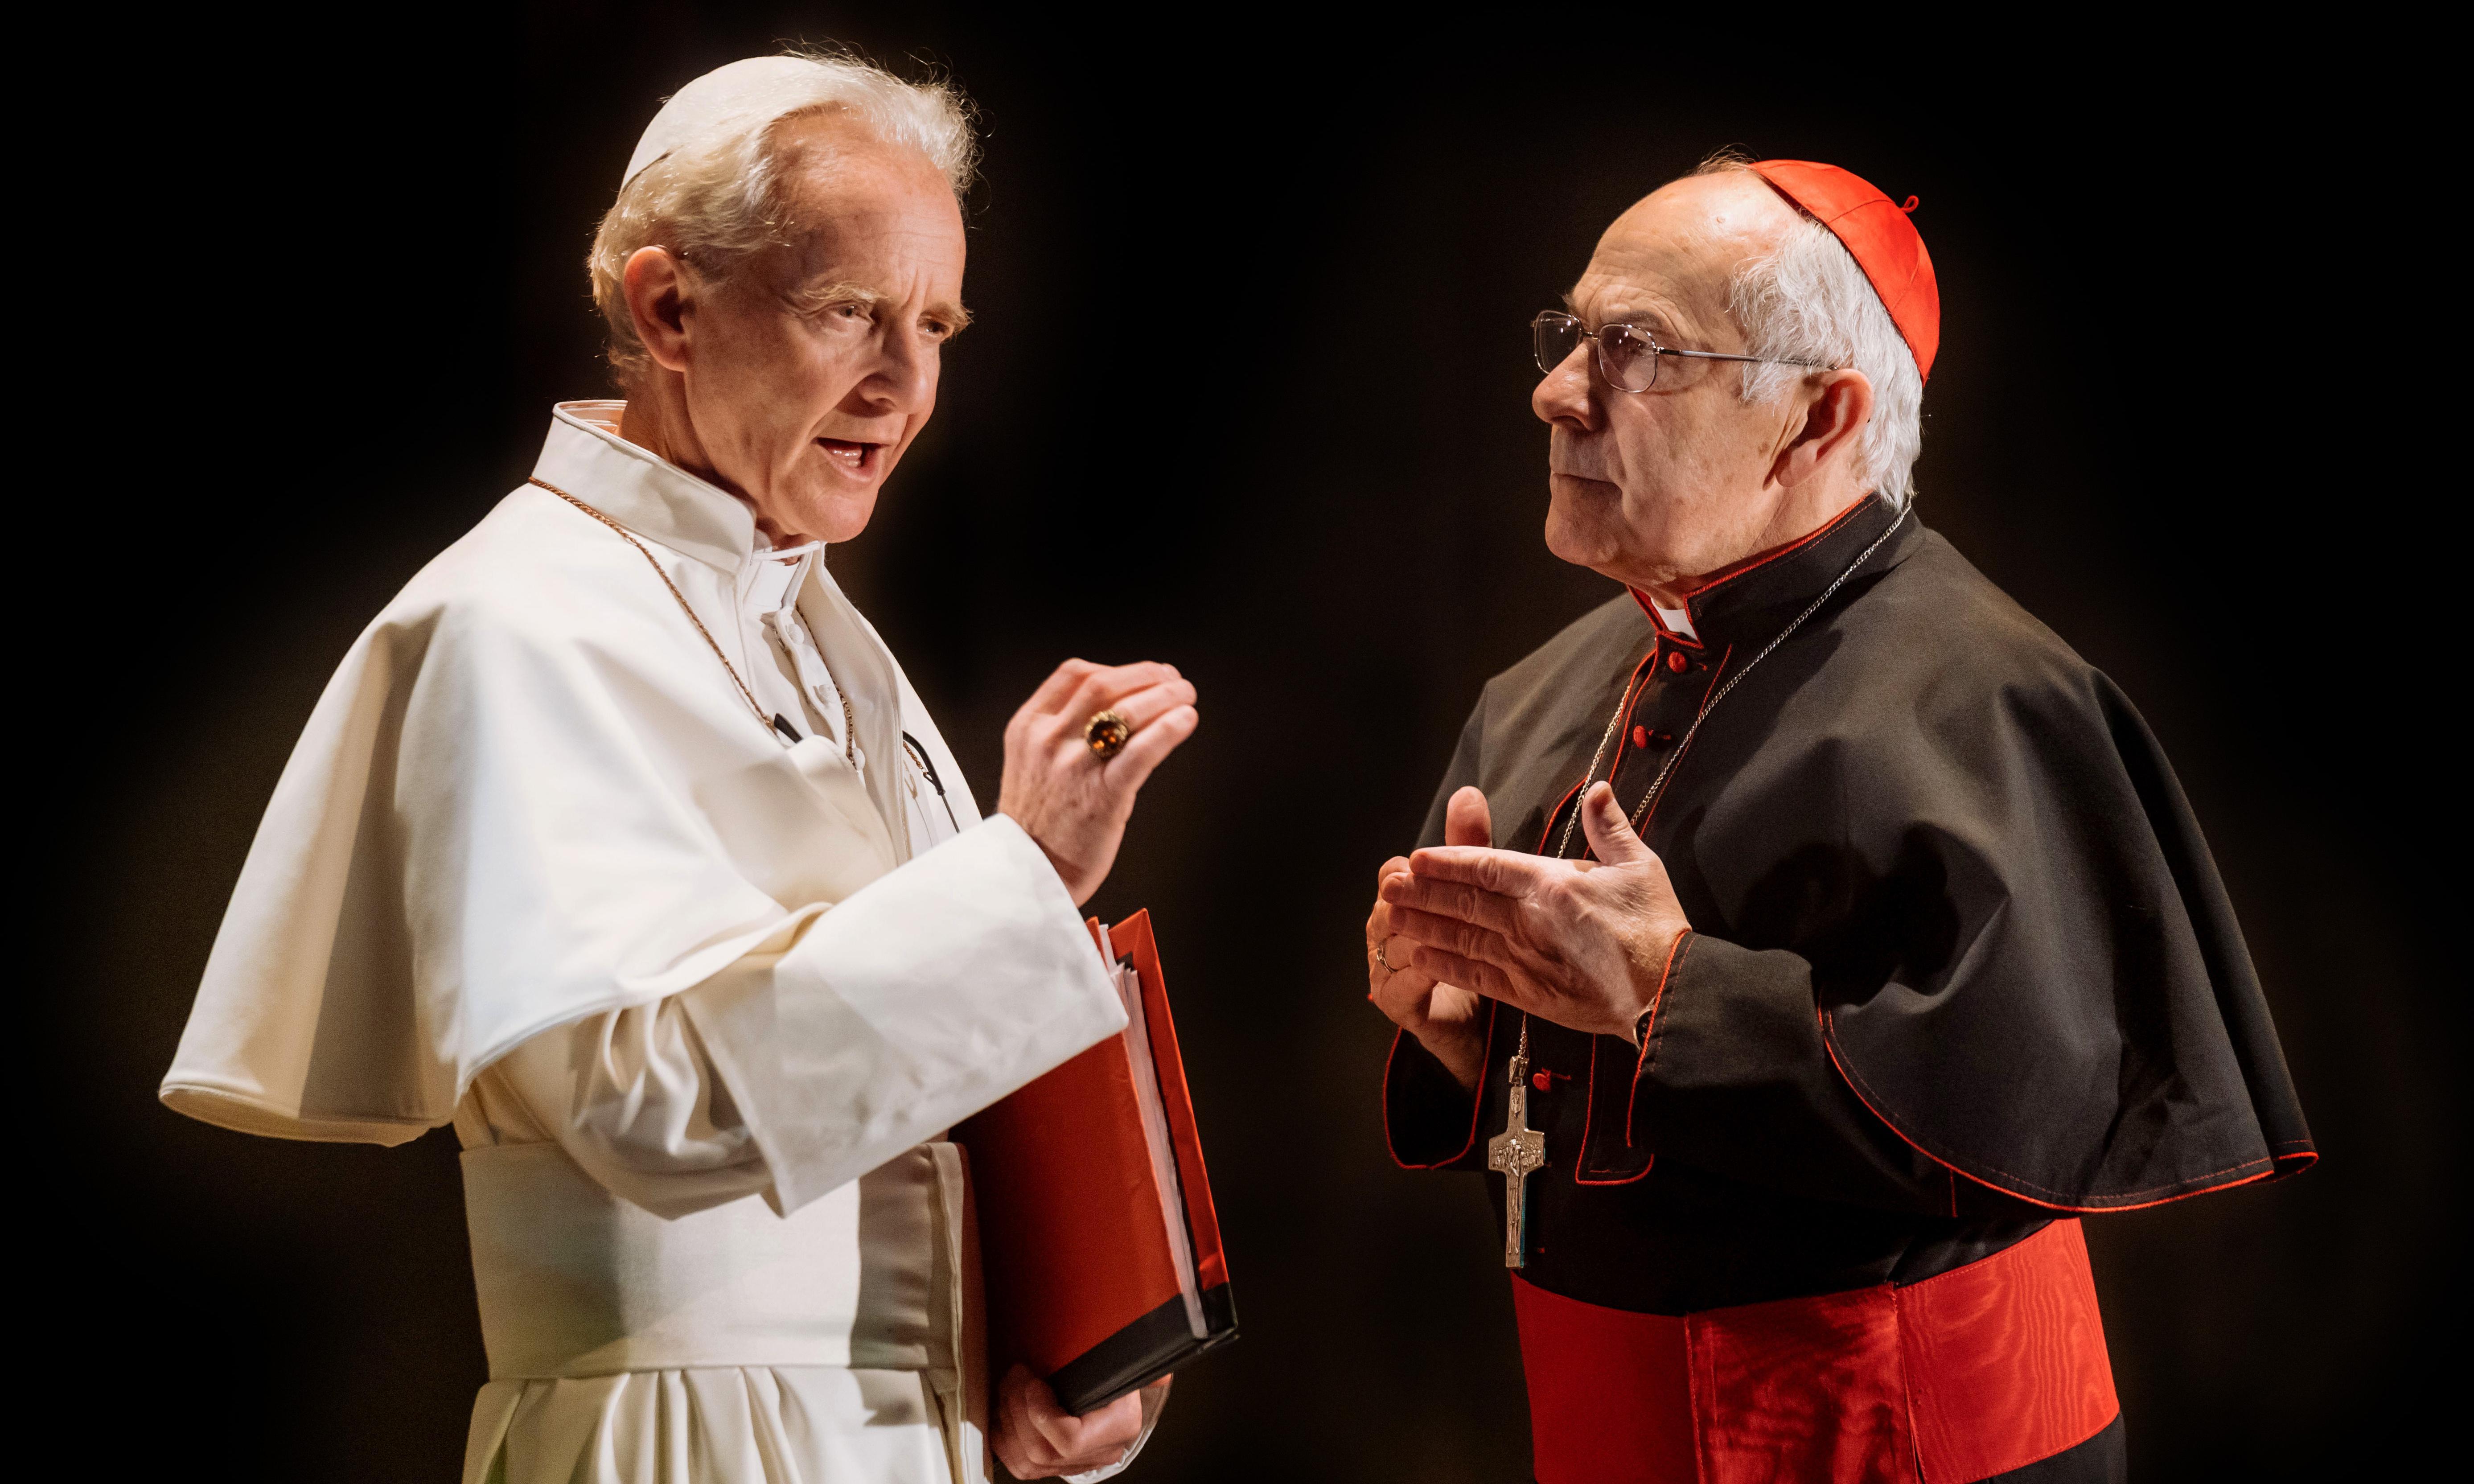 The Pope review – crisis at the heart of Catholicism